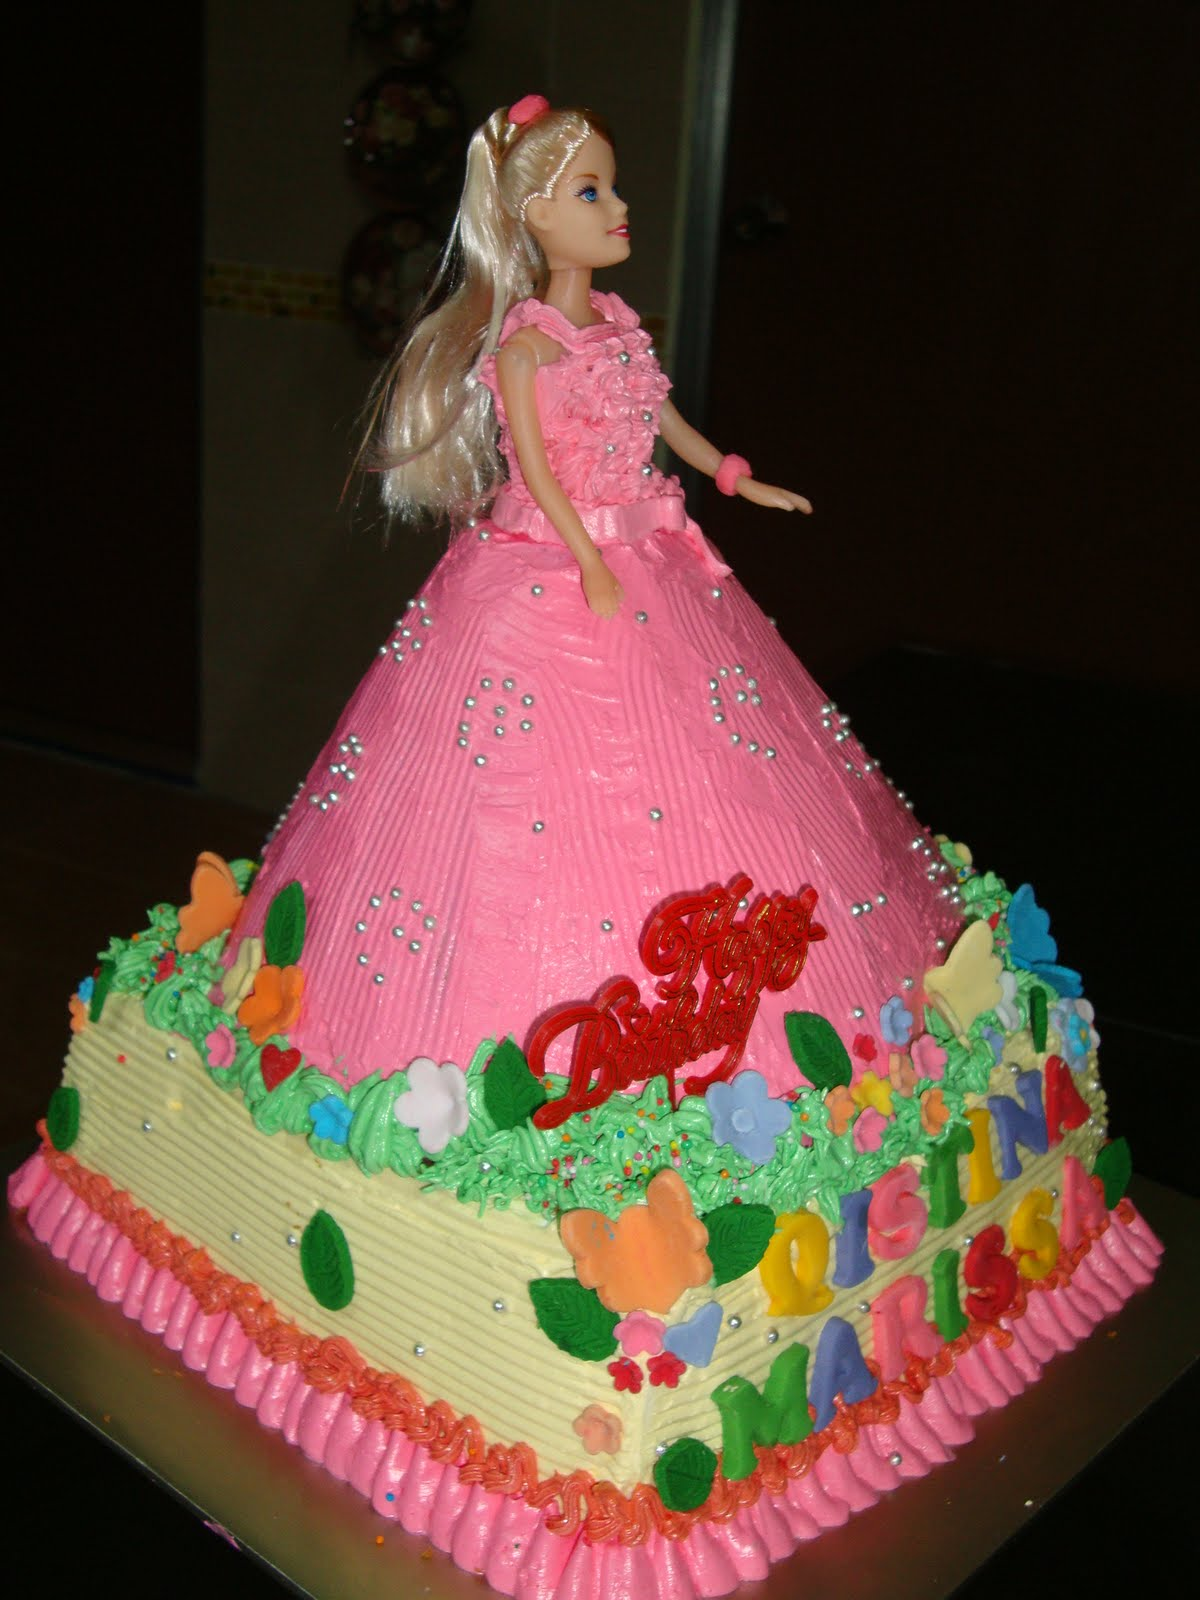 Easy Doll Cake Images : Barbie Cake Doll Cake Decor - Cake Ideas by Prayface.net